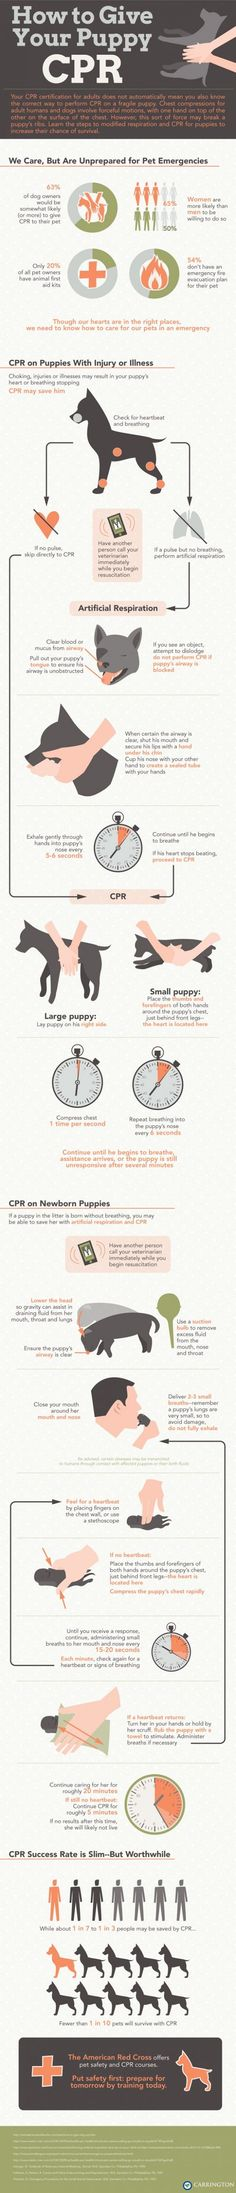 How To Give Your Puppy CPR - The Lazy Pit Bull http://www.thelazypitbull.com/2013/09/how-to-give-your-puppy-cpr/